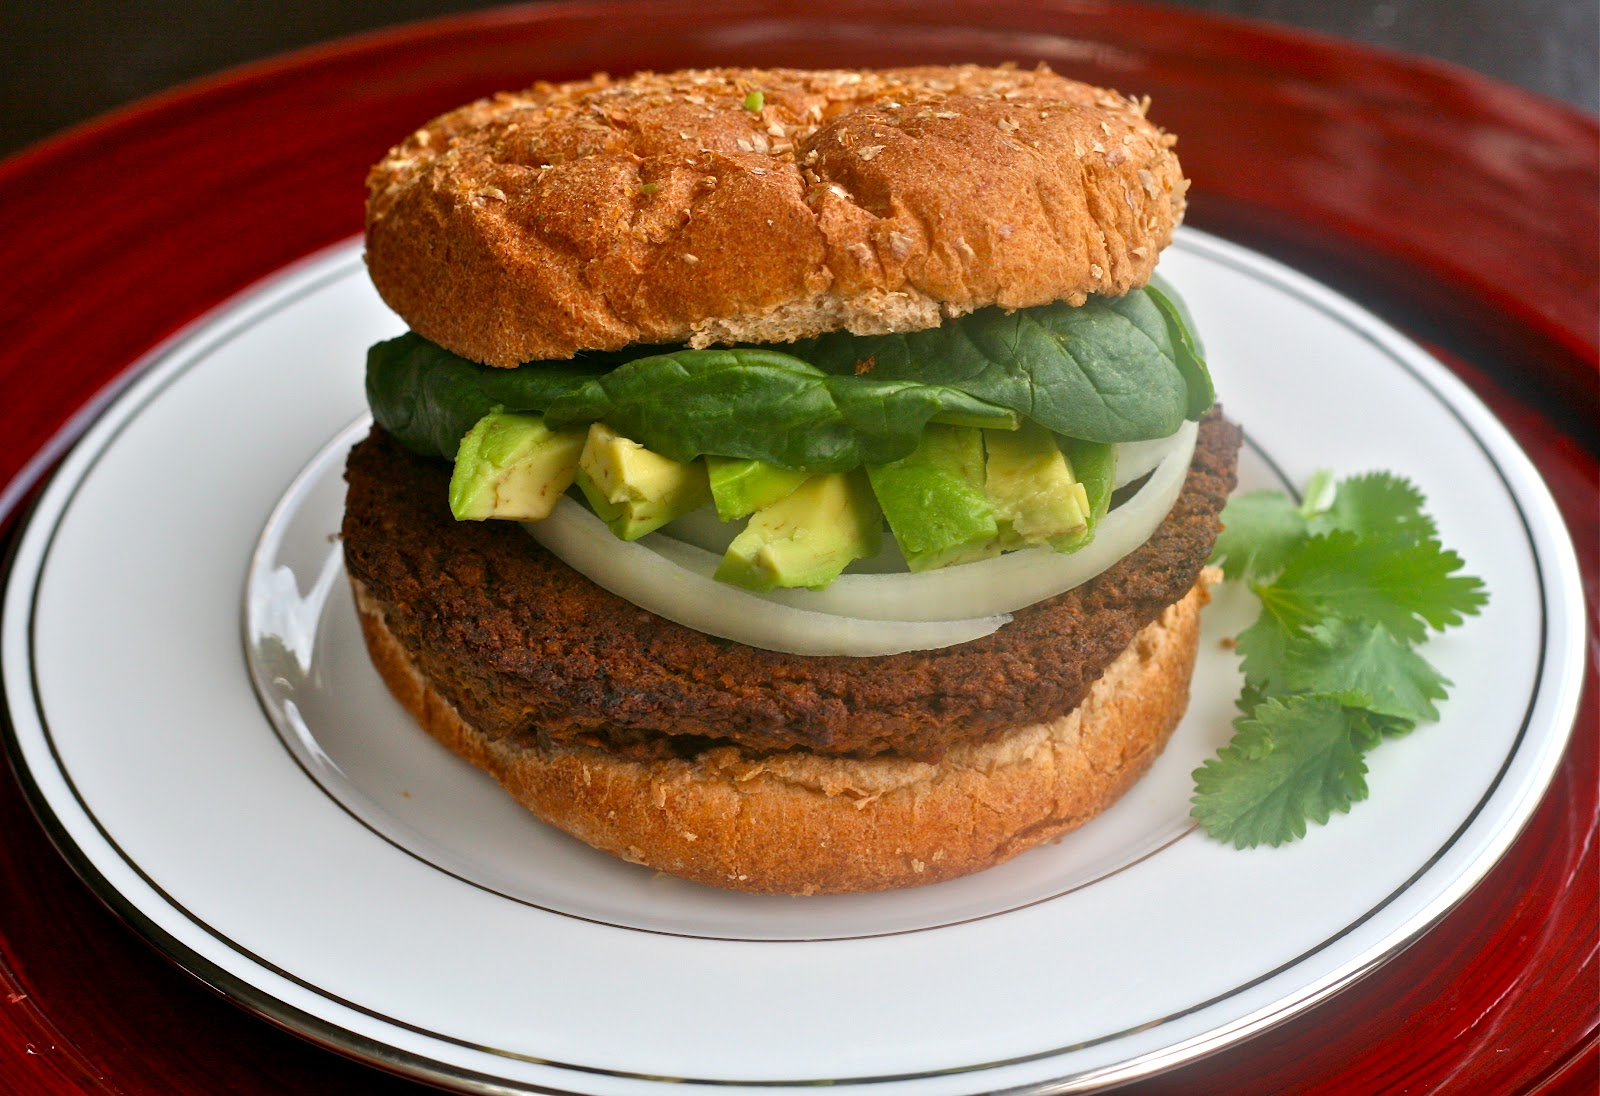 Pile your favorite burger toppings and serve on a whole wheat bun ...